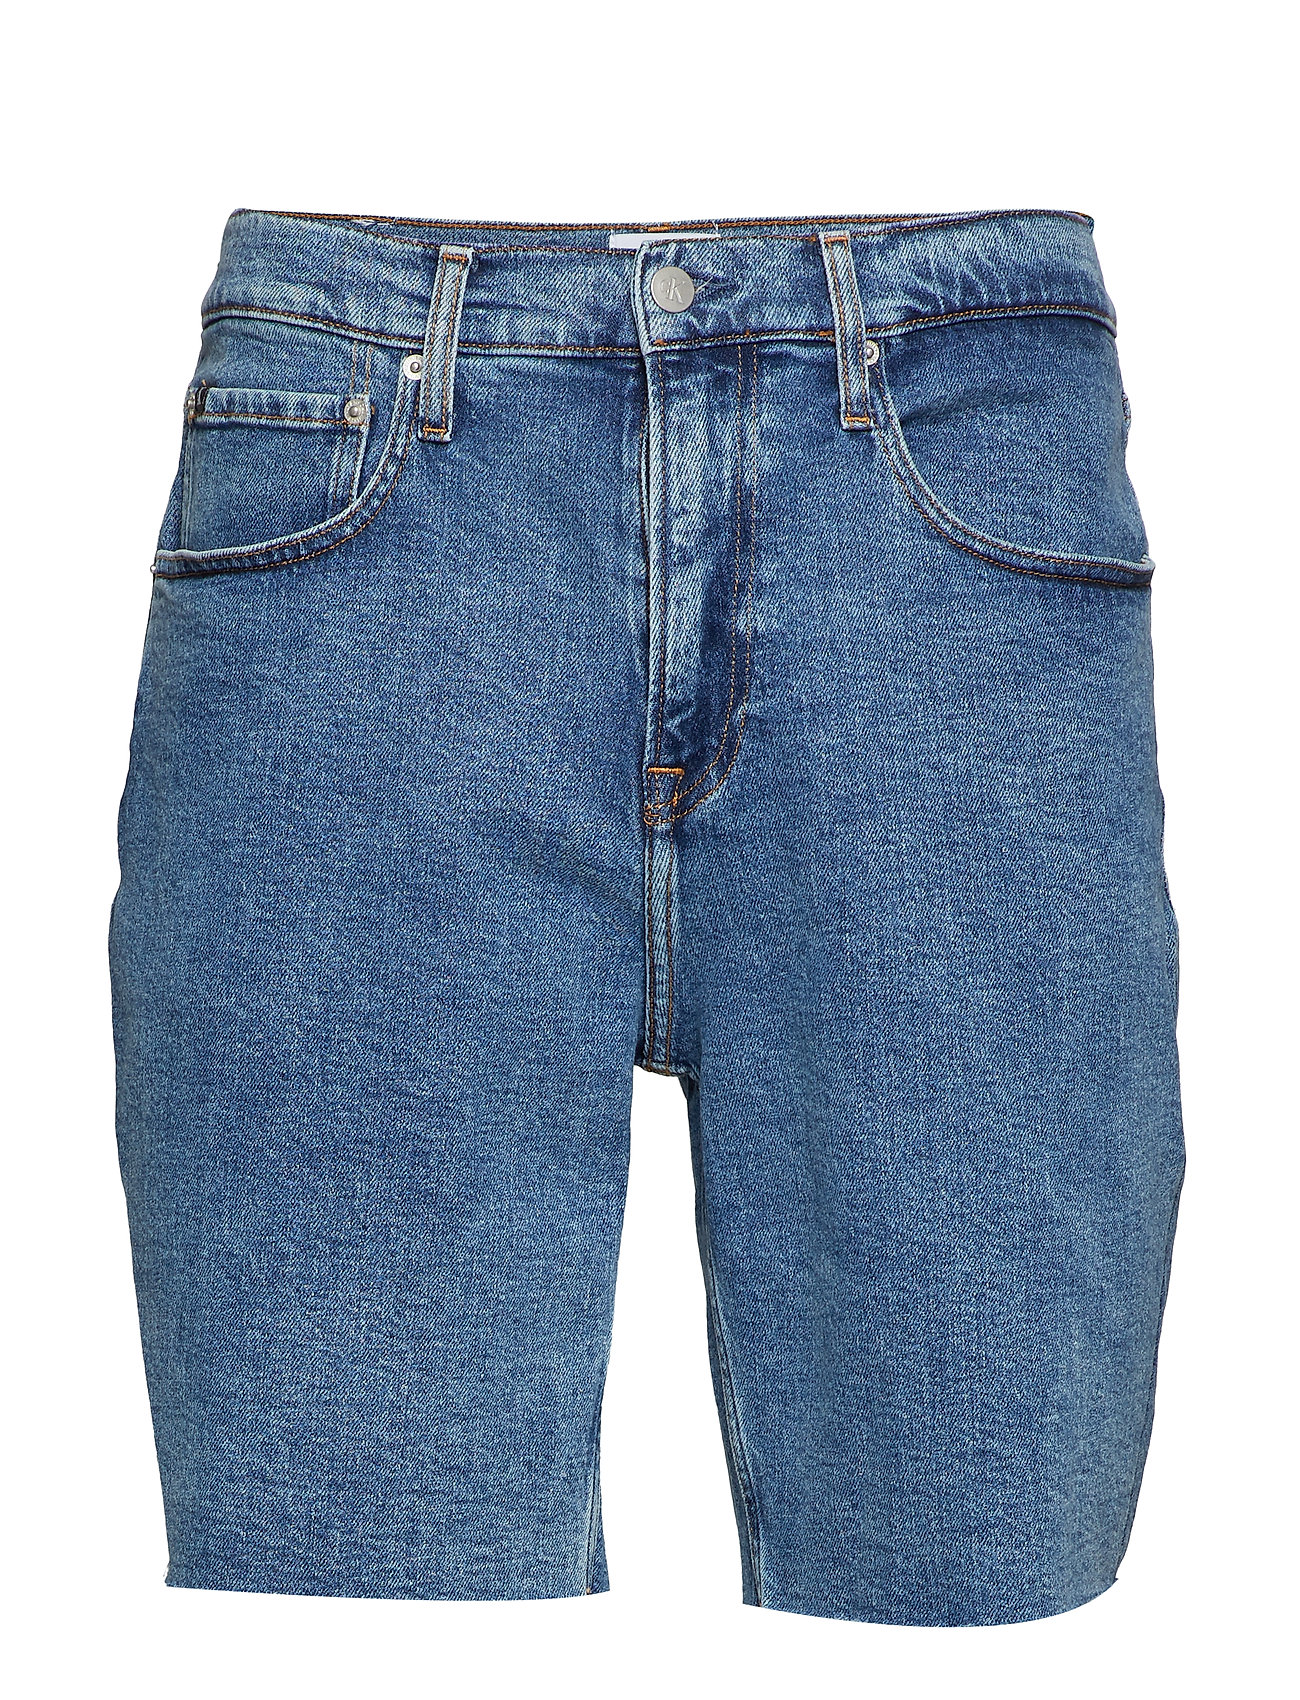 Calvin Klein Jeans STRAIGHT SHORT - ICONIC MID STONE CMF